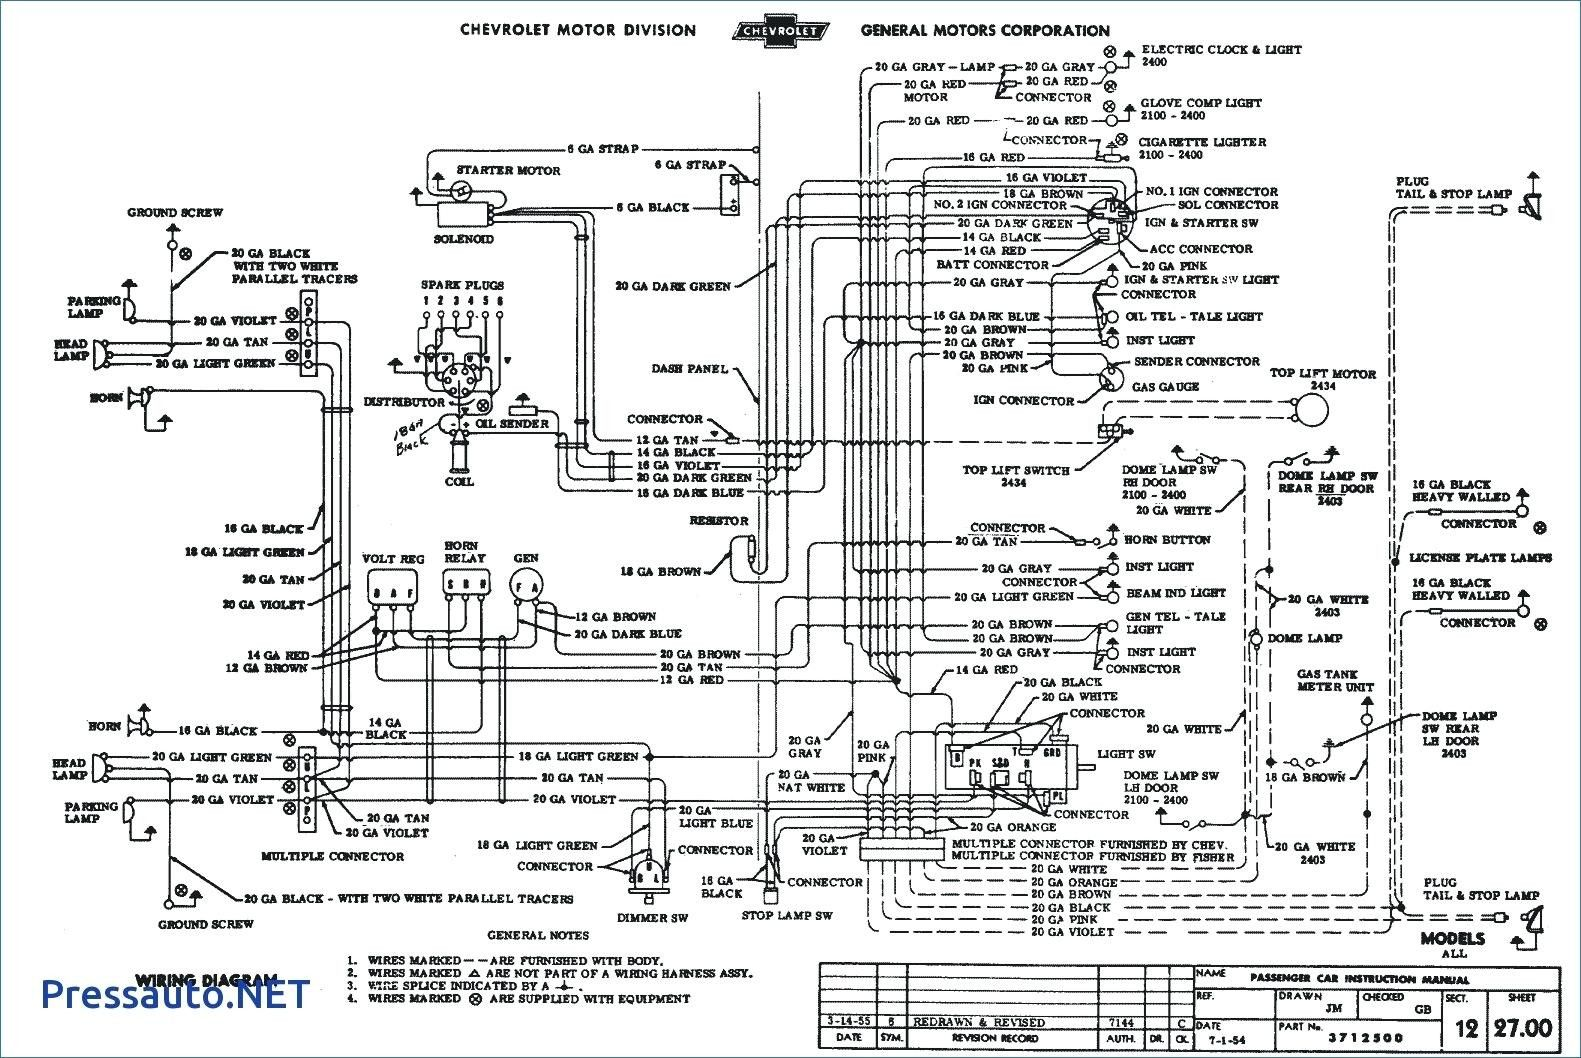 04 Envoy Wiring Diagram